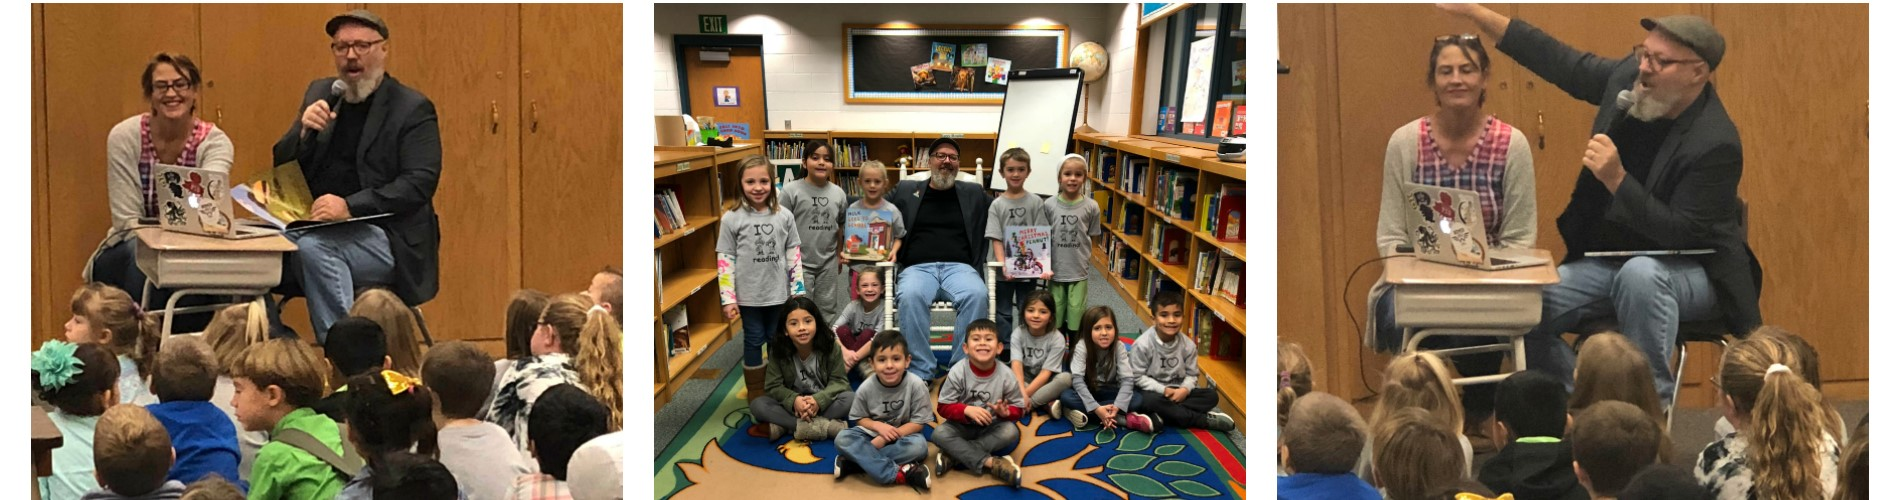 Illustrator Terry Border visits WNP